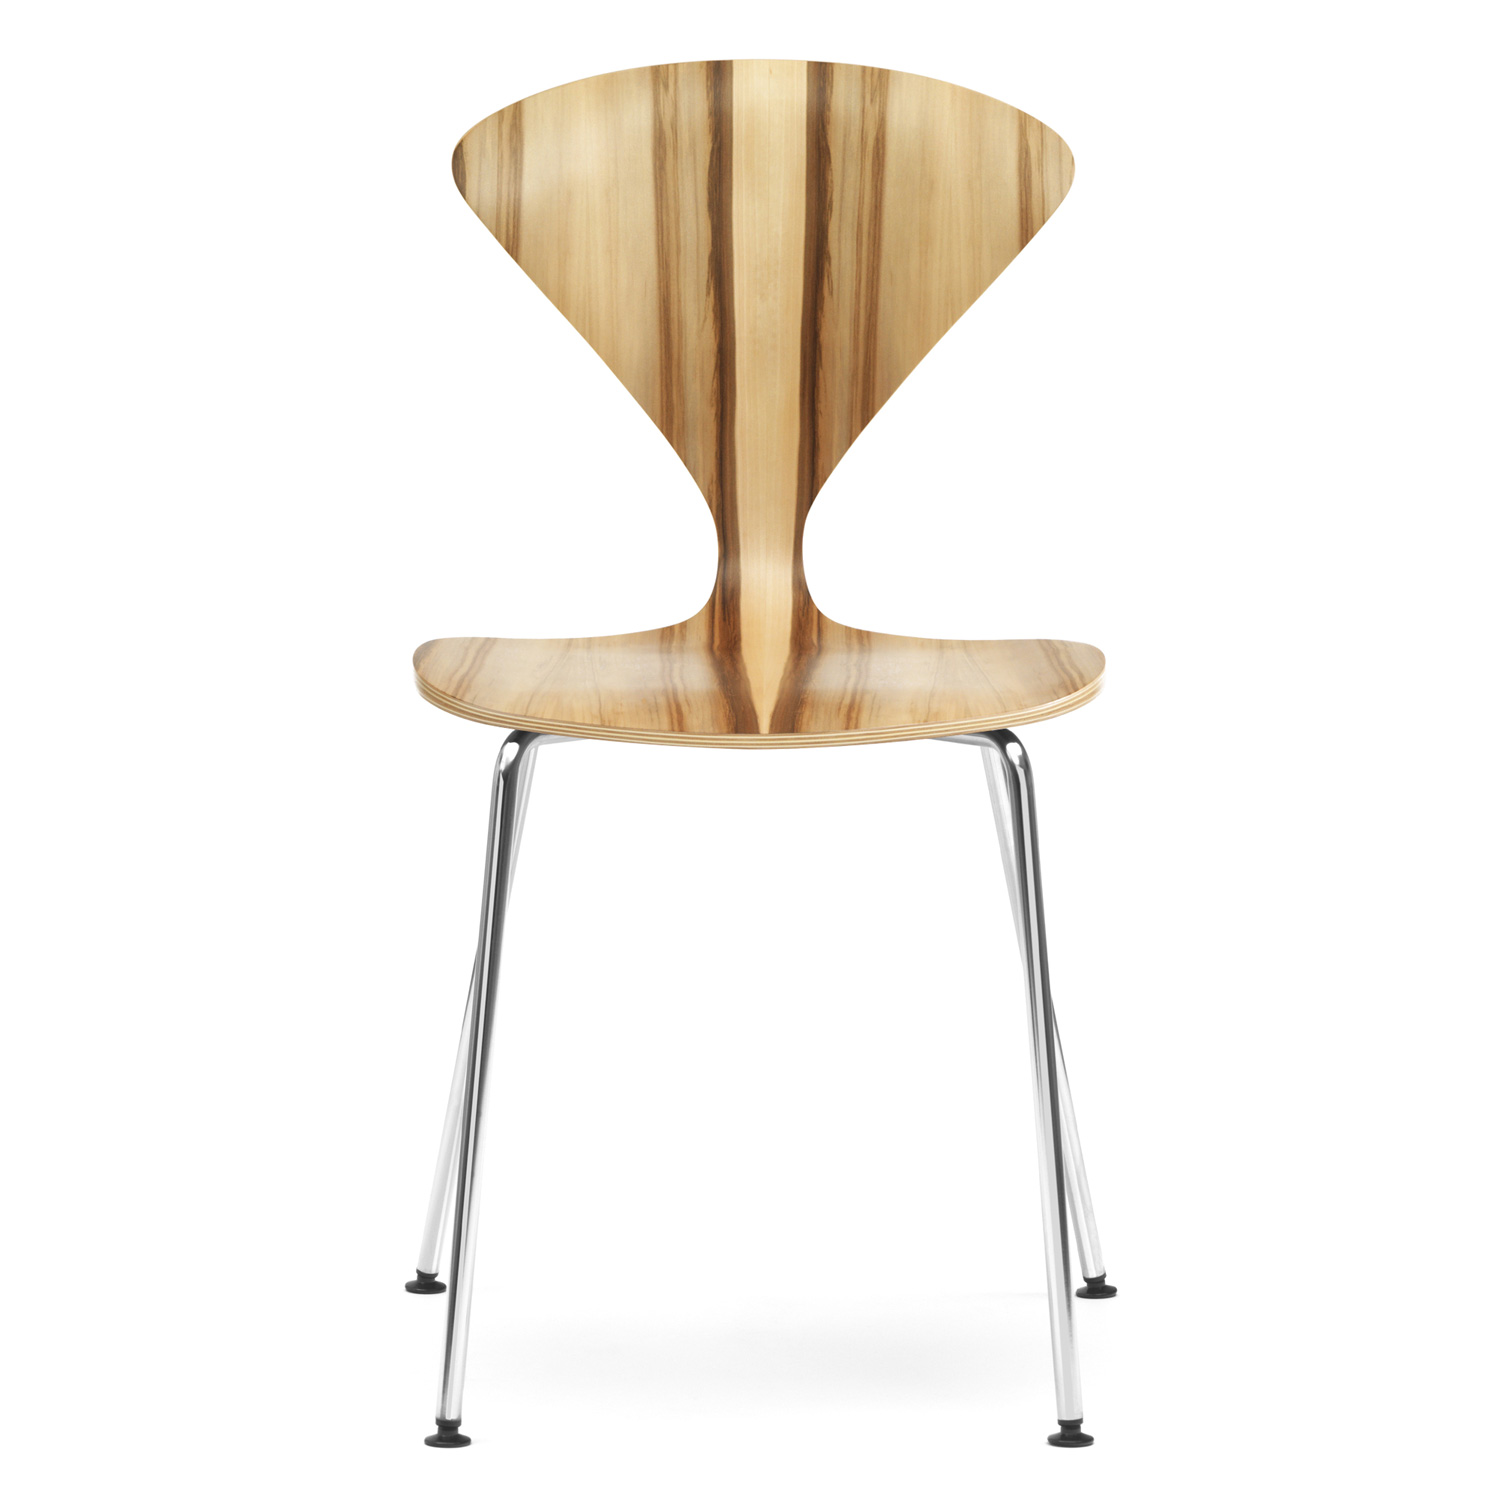 cherner chair wood stacking chrome legs cherner chair wood stacking chrome legs